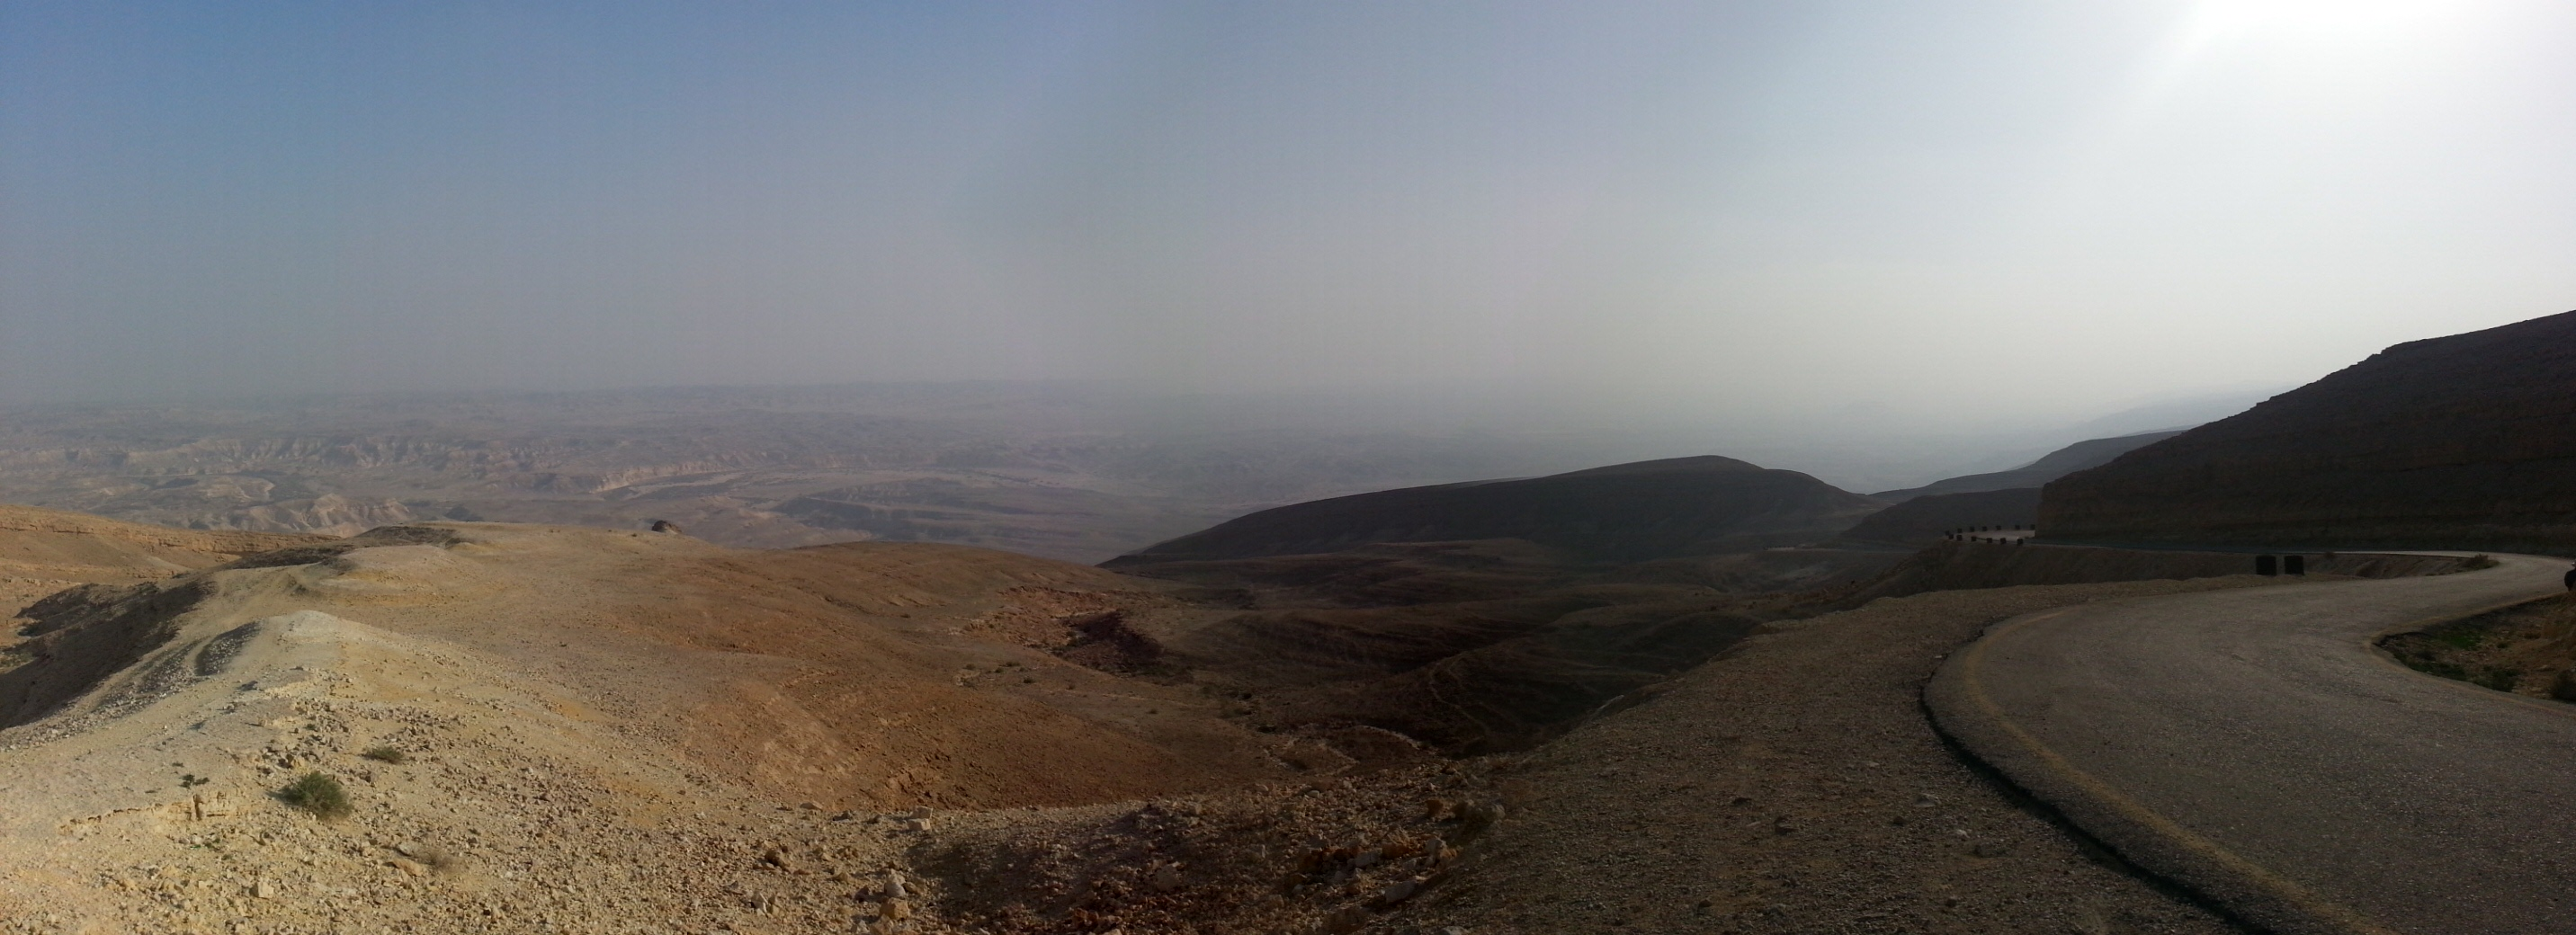 View from the top of the Scorpions' Ascent